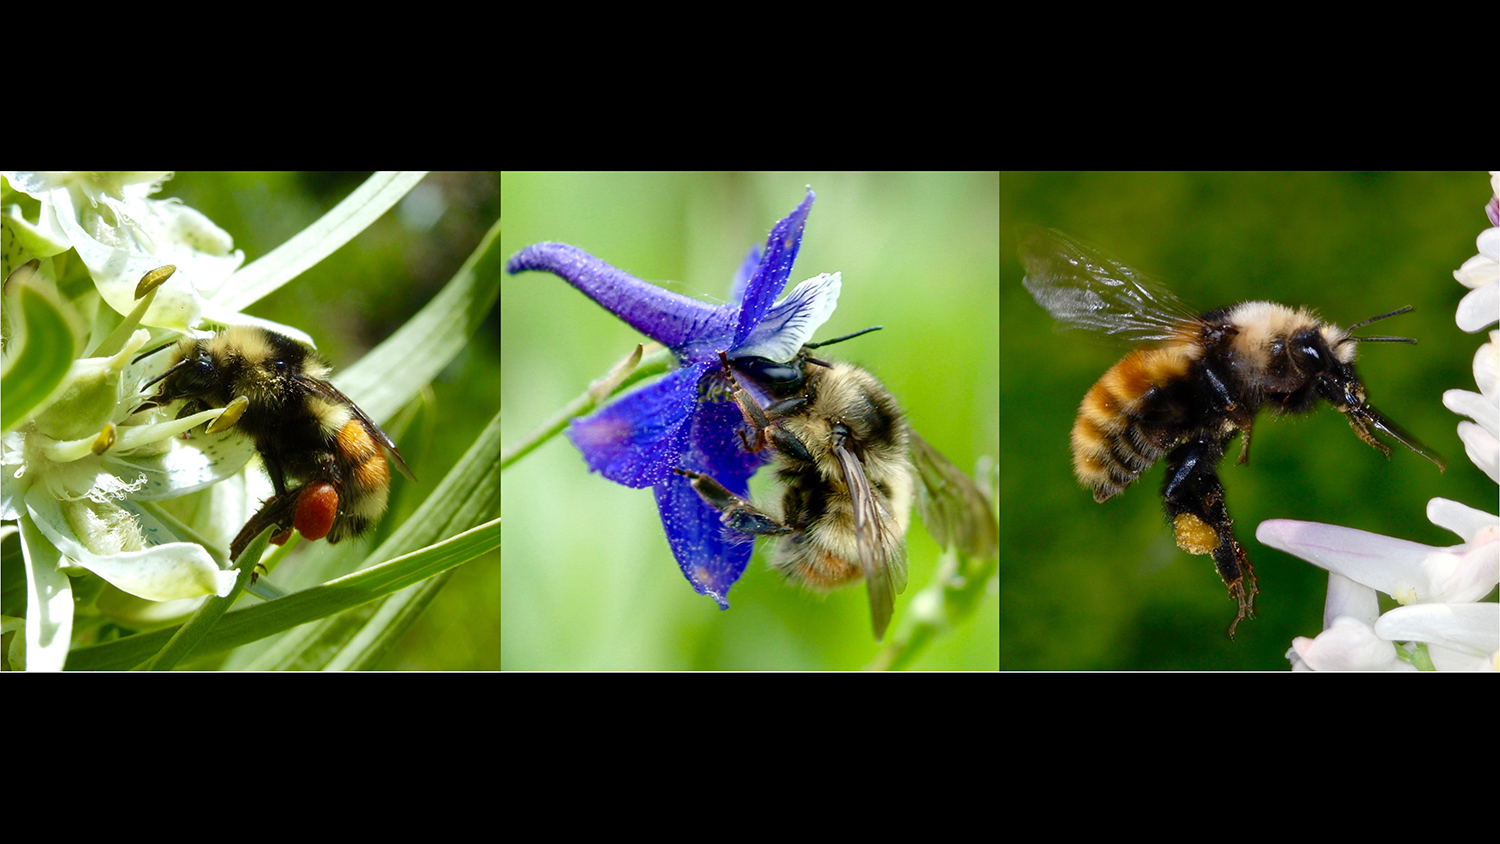 New bumble bee research shows that extended flowering seasons due to climate change have detrimental effects on our native pollinators. Photo courtesy of  Jane Ogilvie.